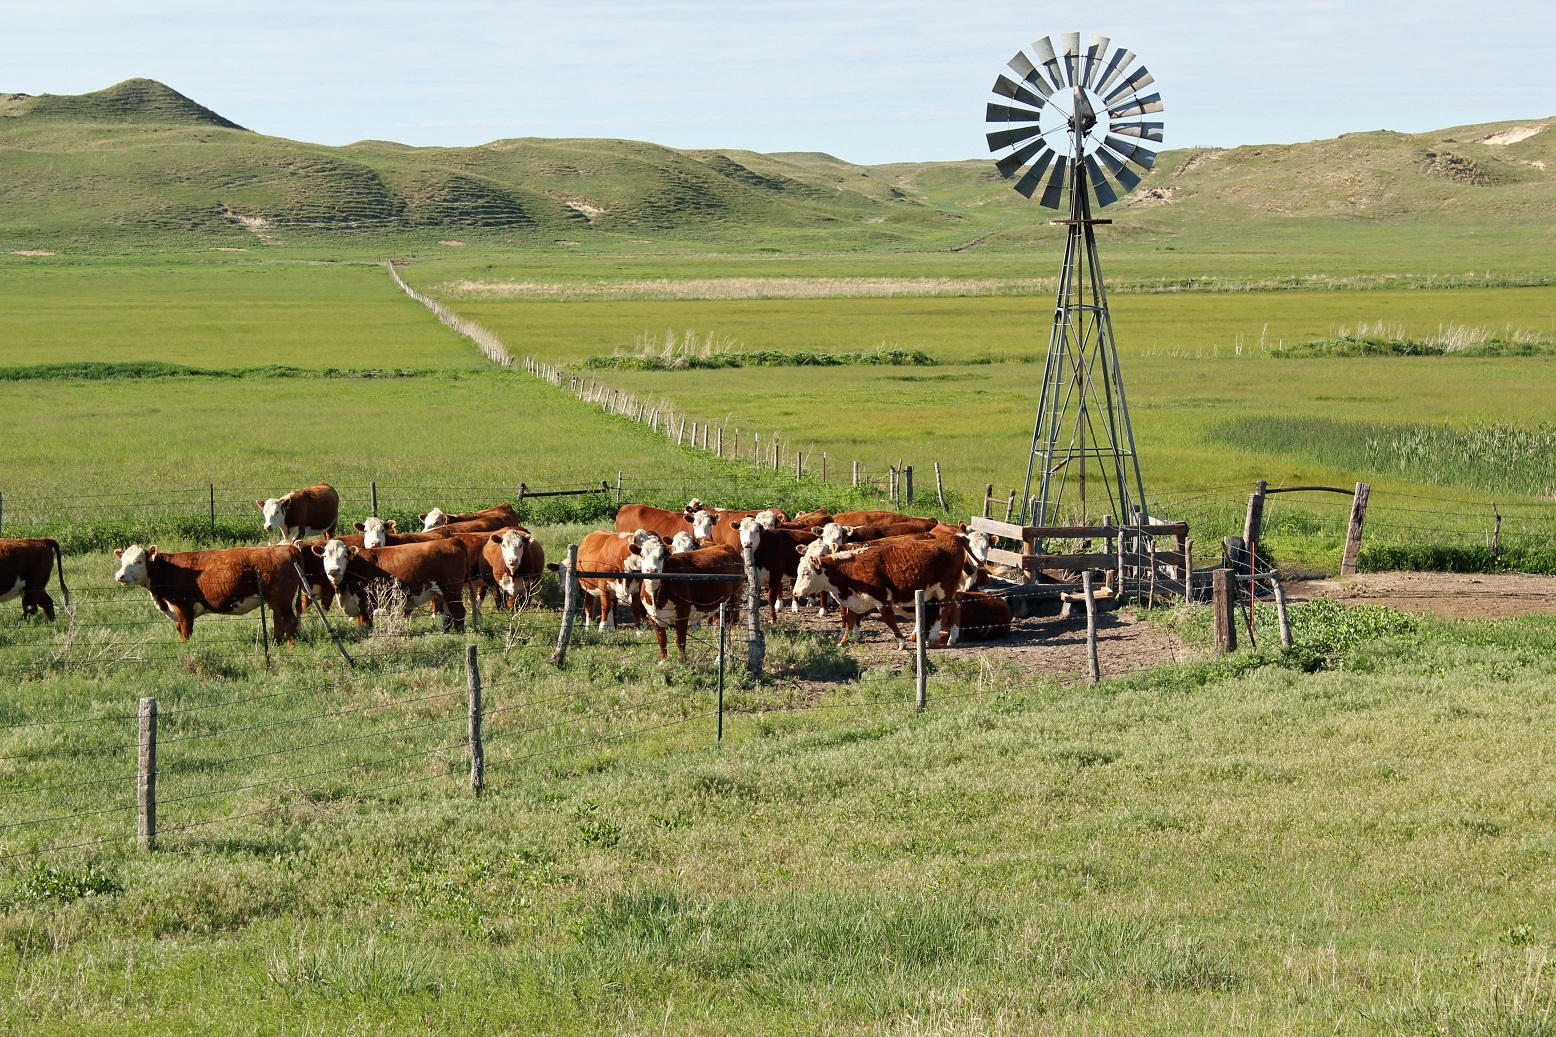 Cattle in a field with a windmill